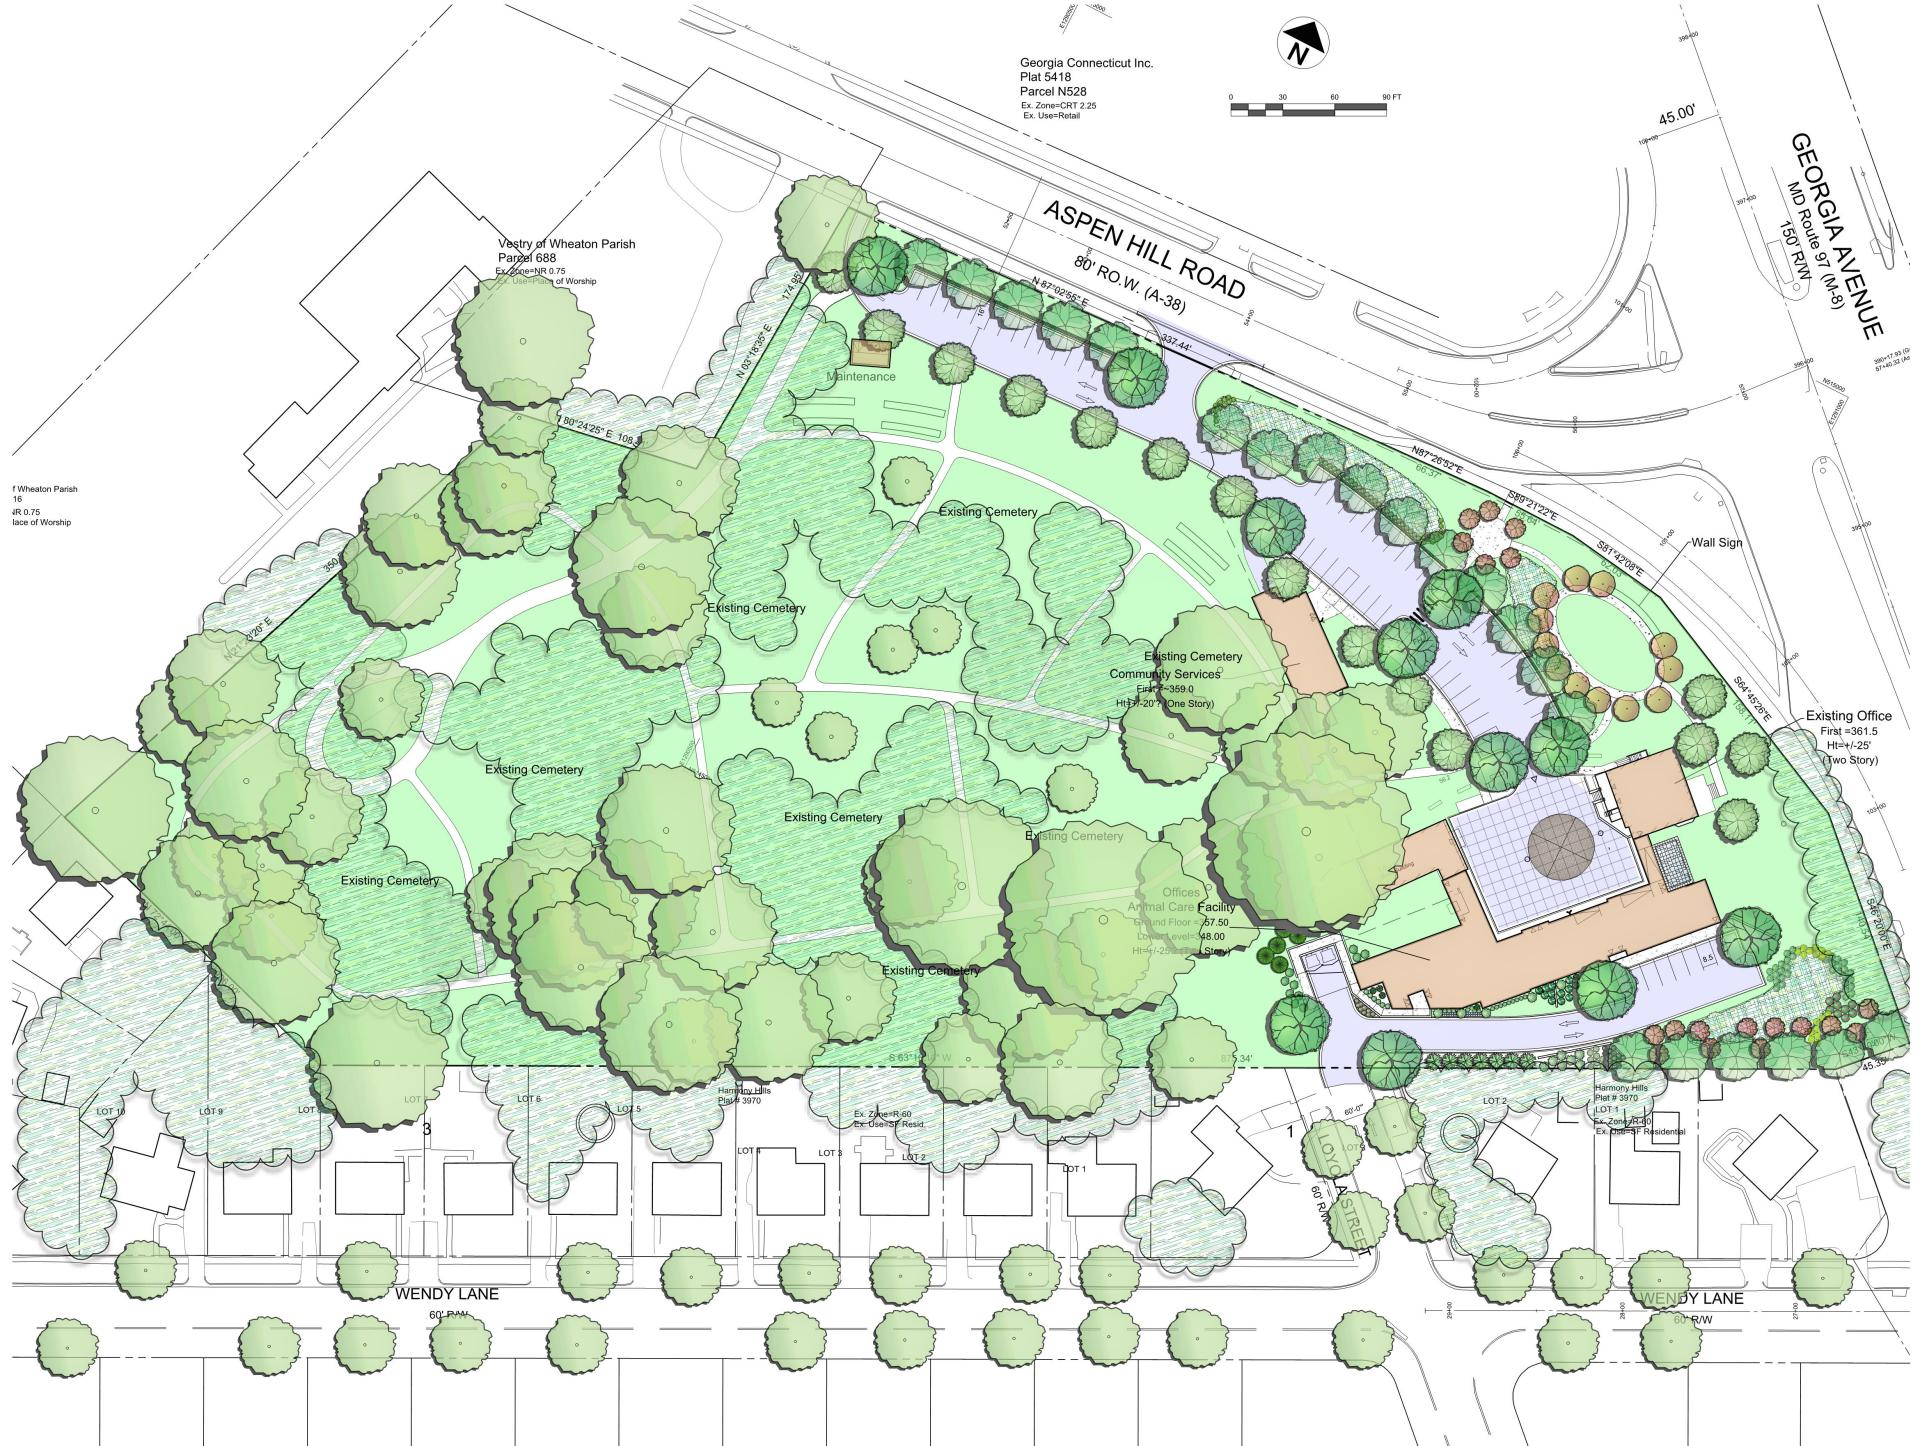 Mchs Campus Map.Montgomery County Humane Society Campus Gbr Architects